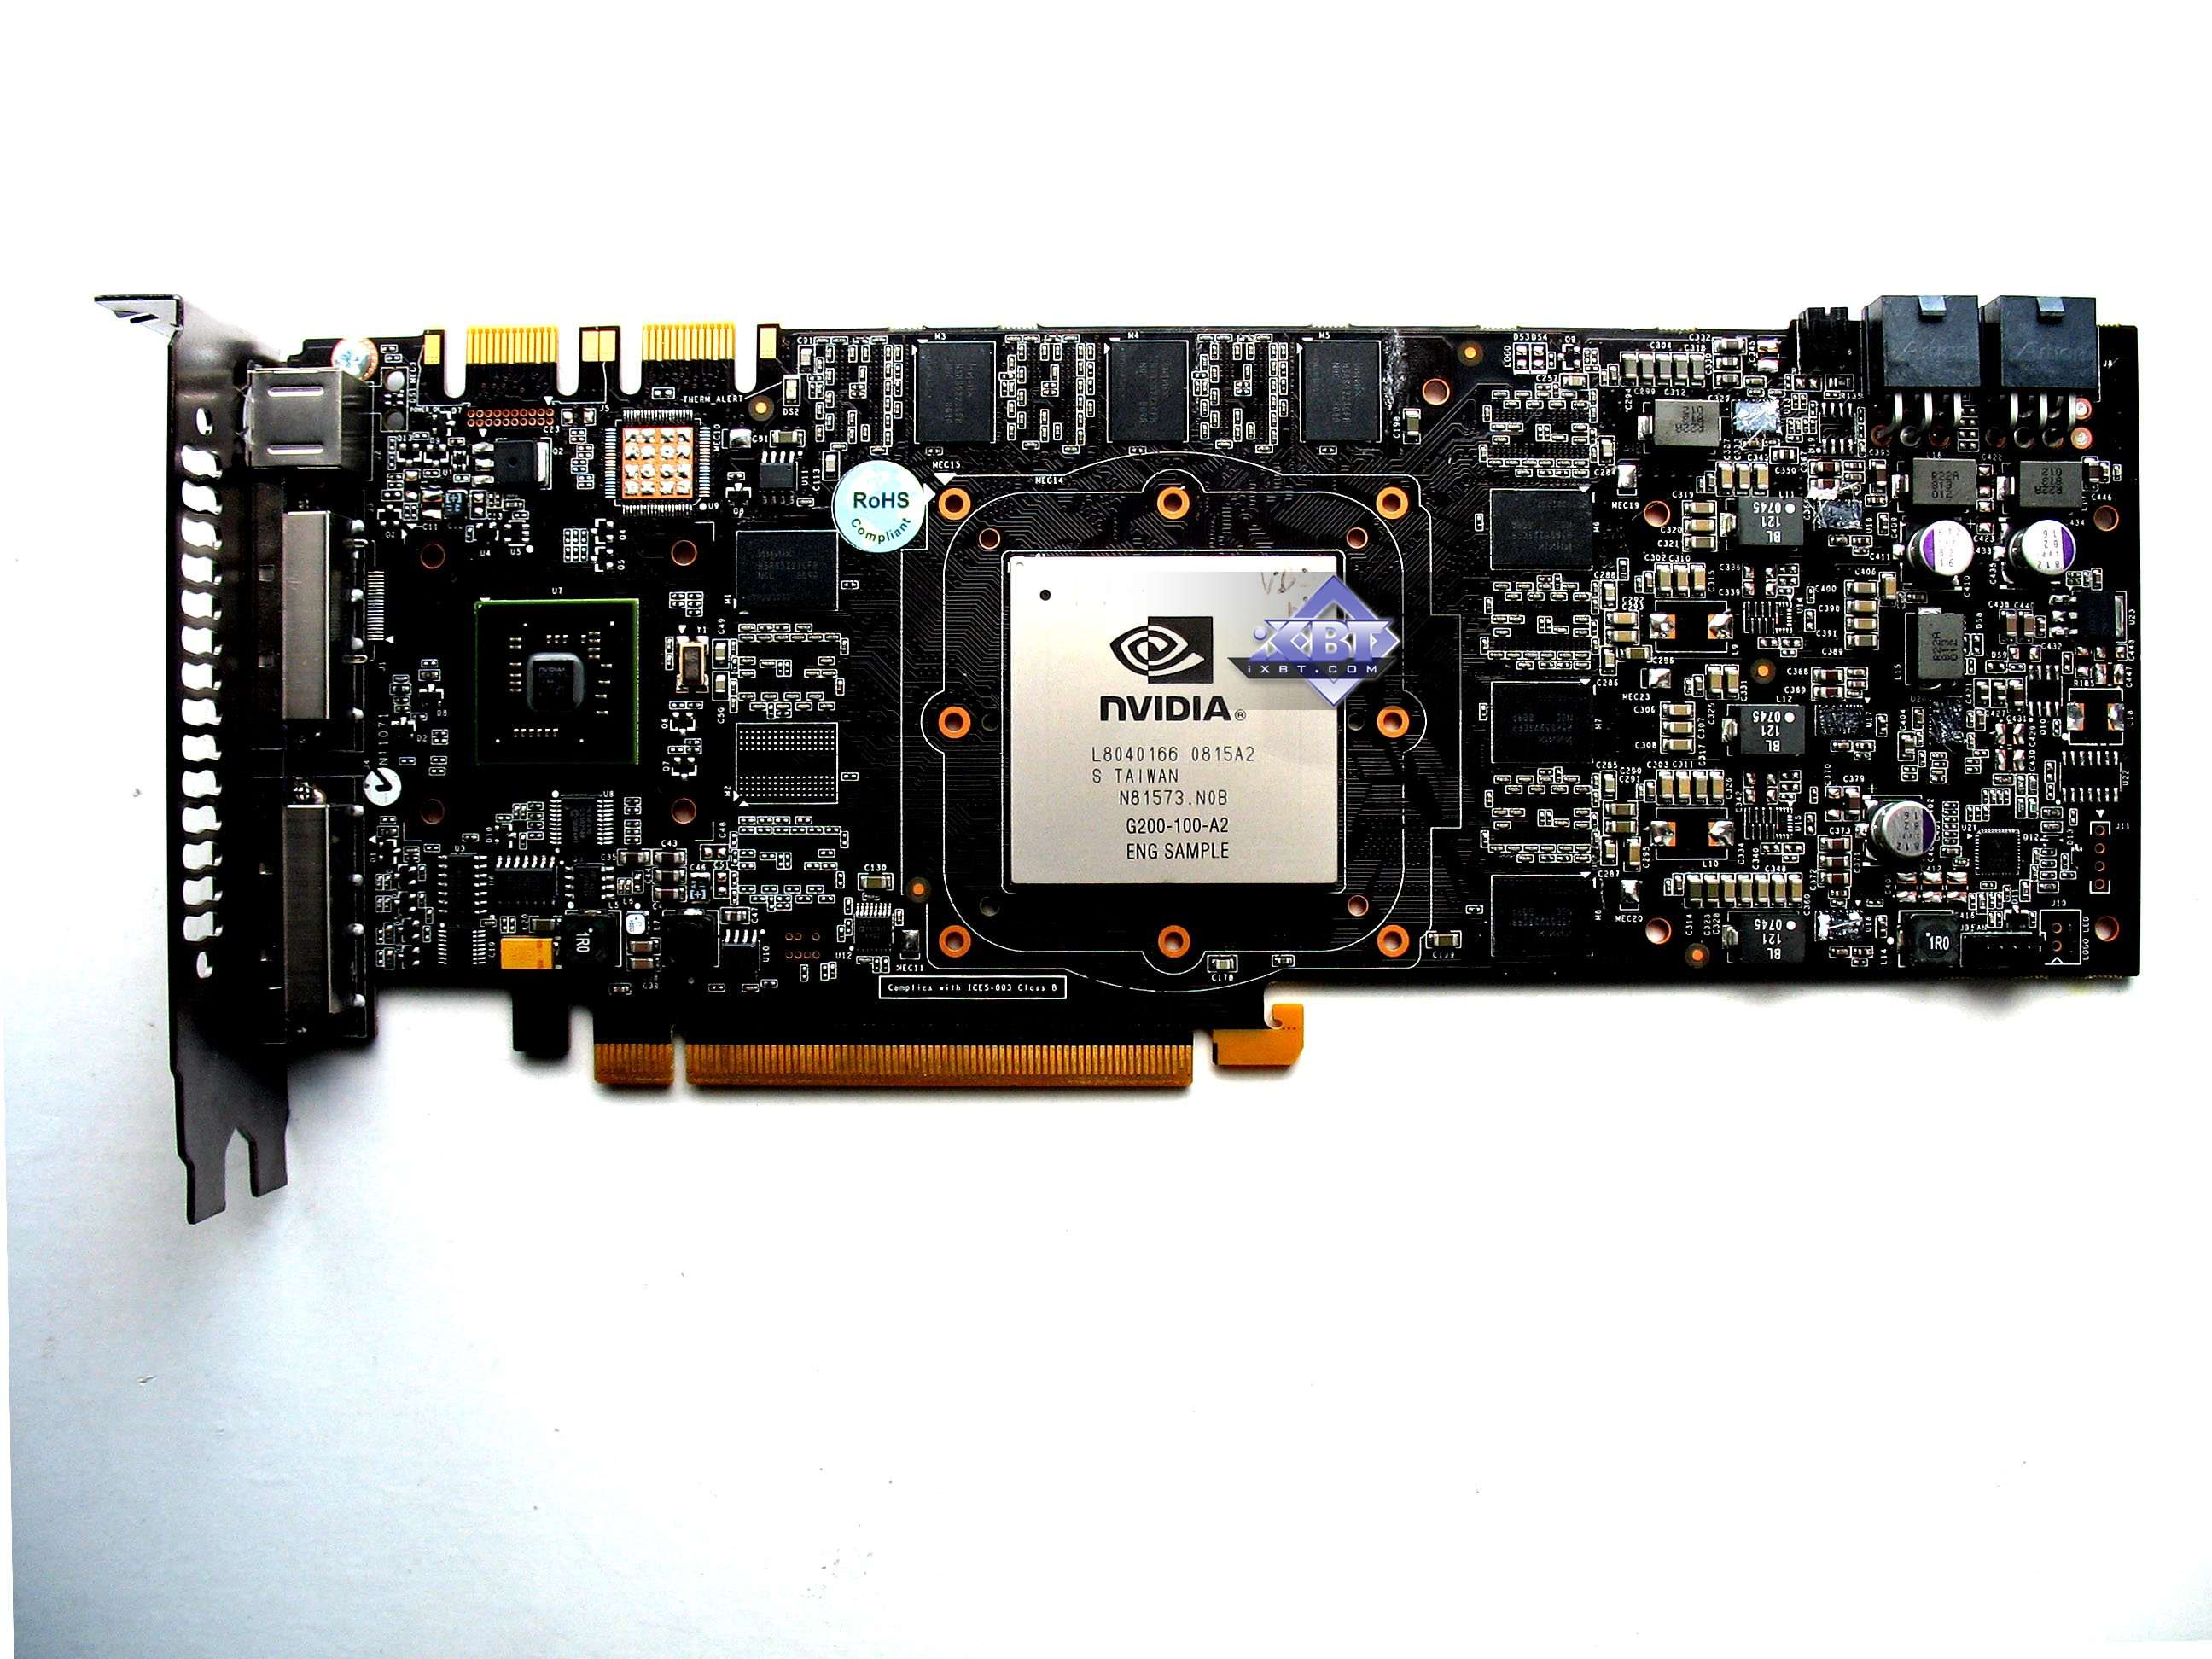 Download nvidia geforce gtx 260 graphic control driver, geforce.